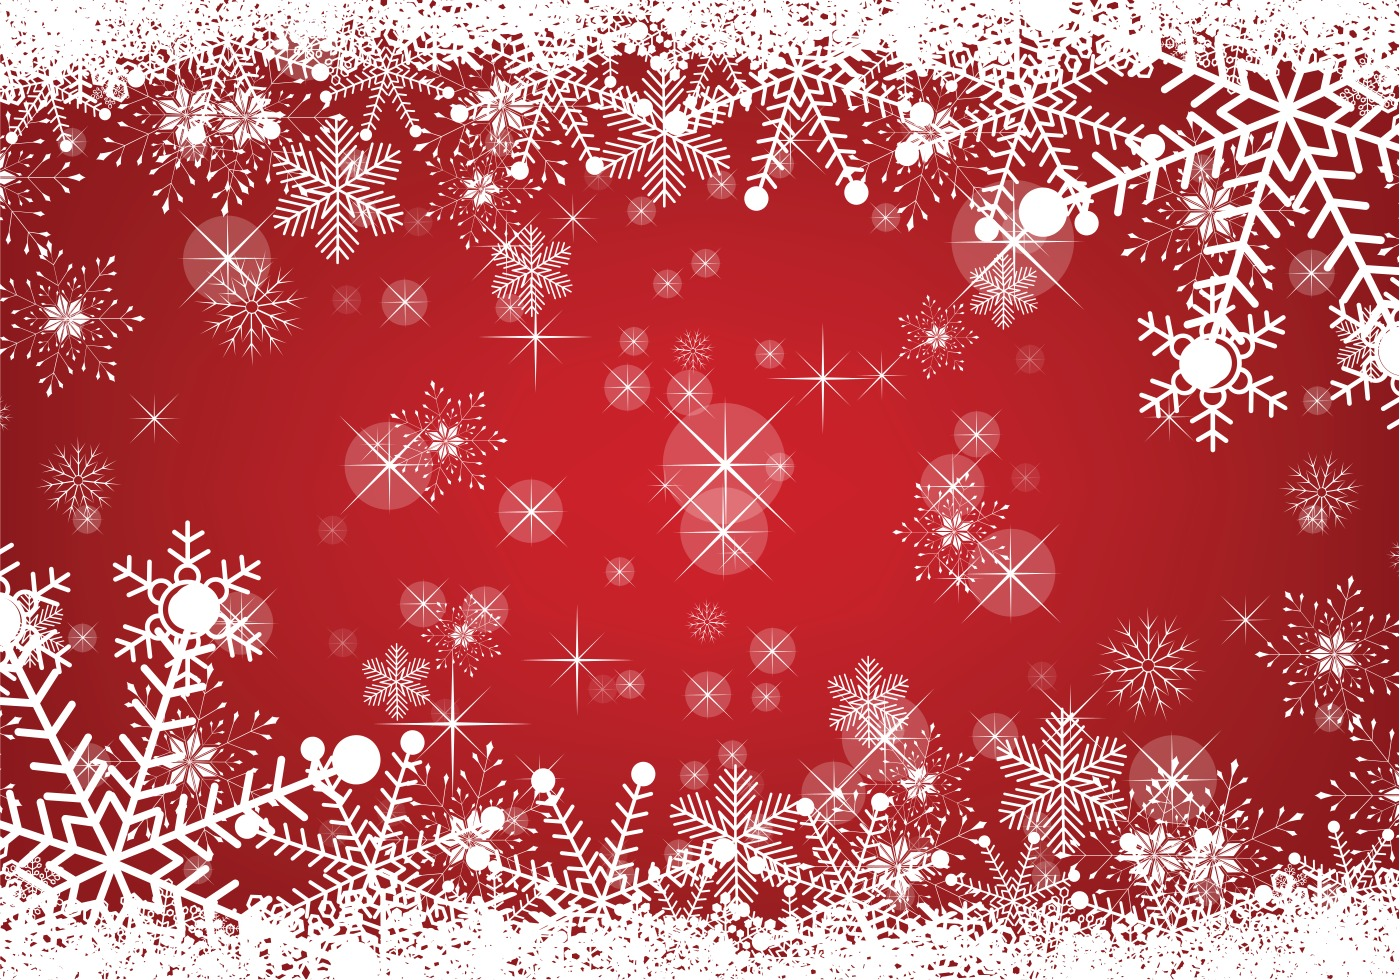 Red Christmas Background.Red Christmas Background Free Vector Art 3 764 Free